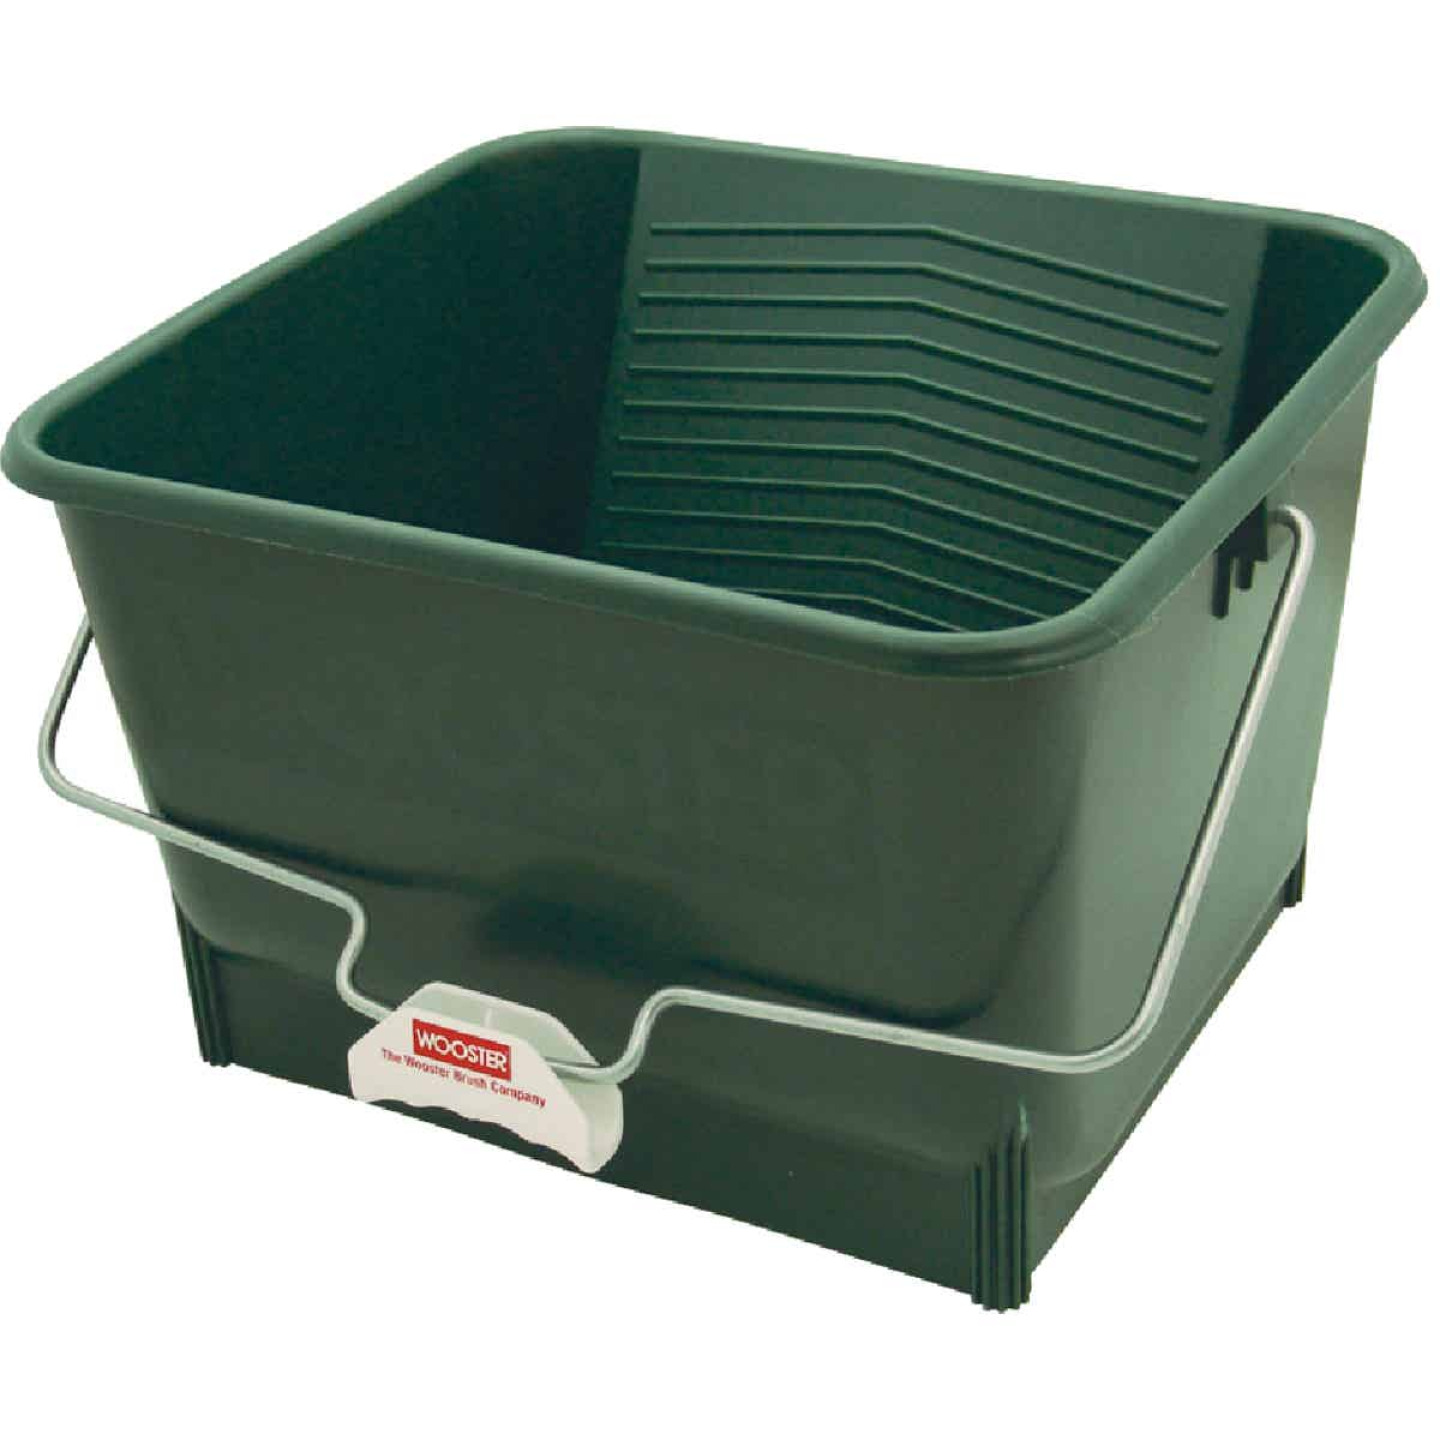 Wooster 4 Gal. Green Painter's Bucket Image 1